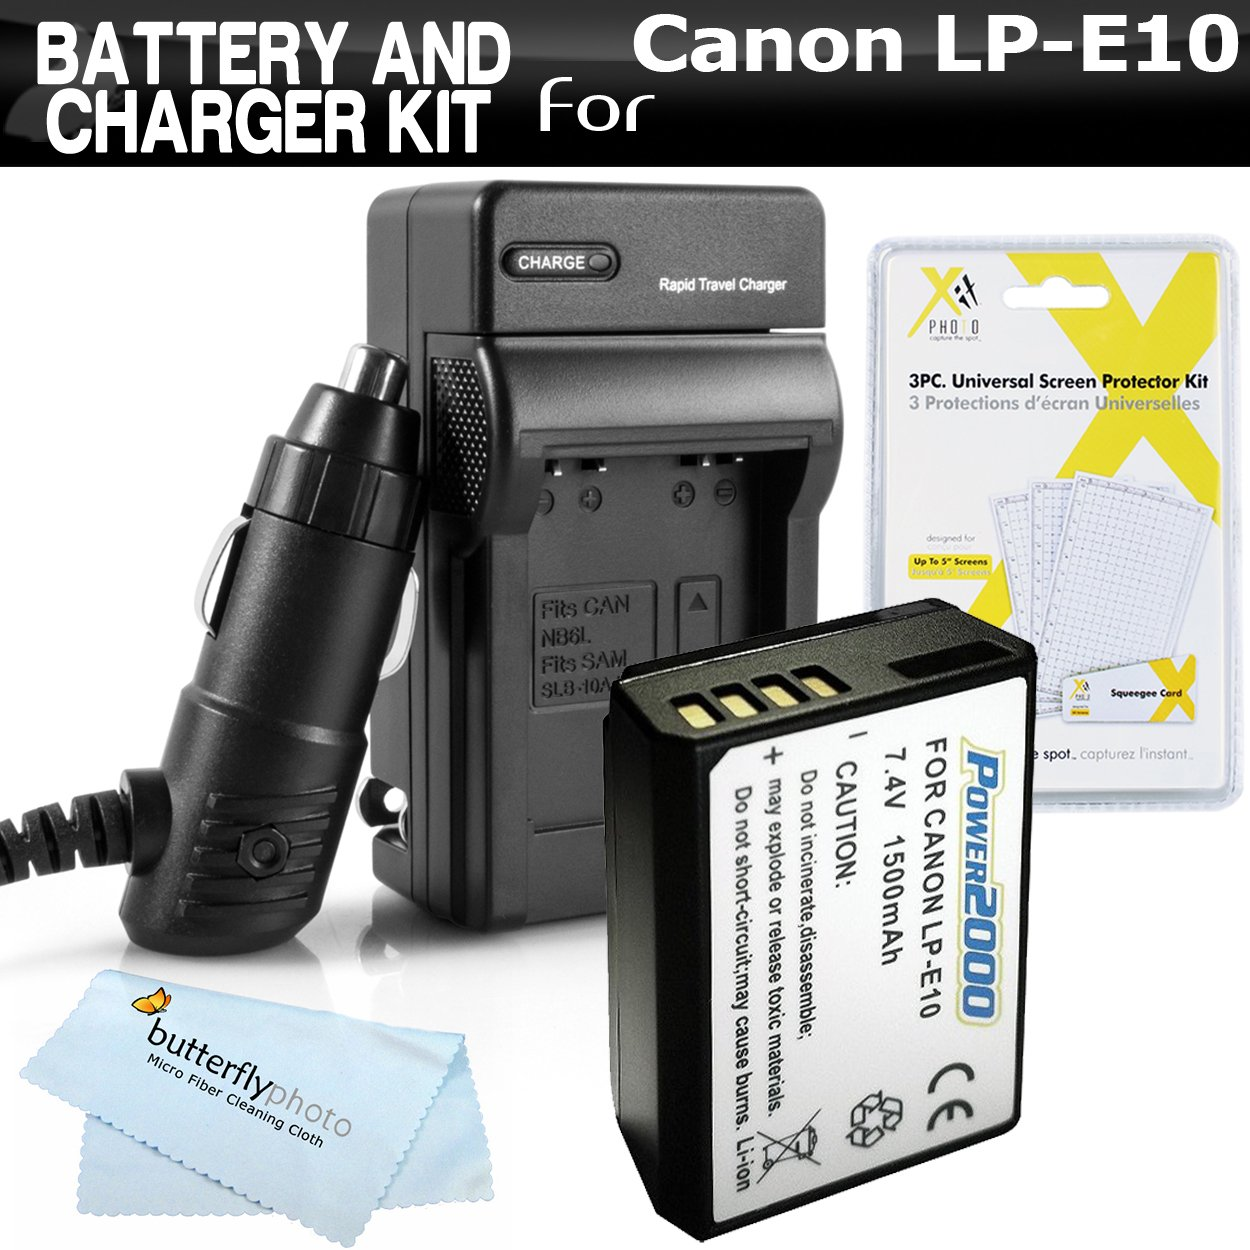 Battery And Charger Kit For Canon EOS Rebel T5, T3, EOS Rebel T6 Digital SLR Camera Includes Extended (1500mAh) Replacement LP-E10 Battery + Ac/Dc Rapid Travel Charger + LCD Screen Protectors + More by ButterflyPhoto